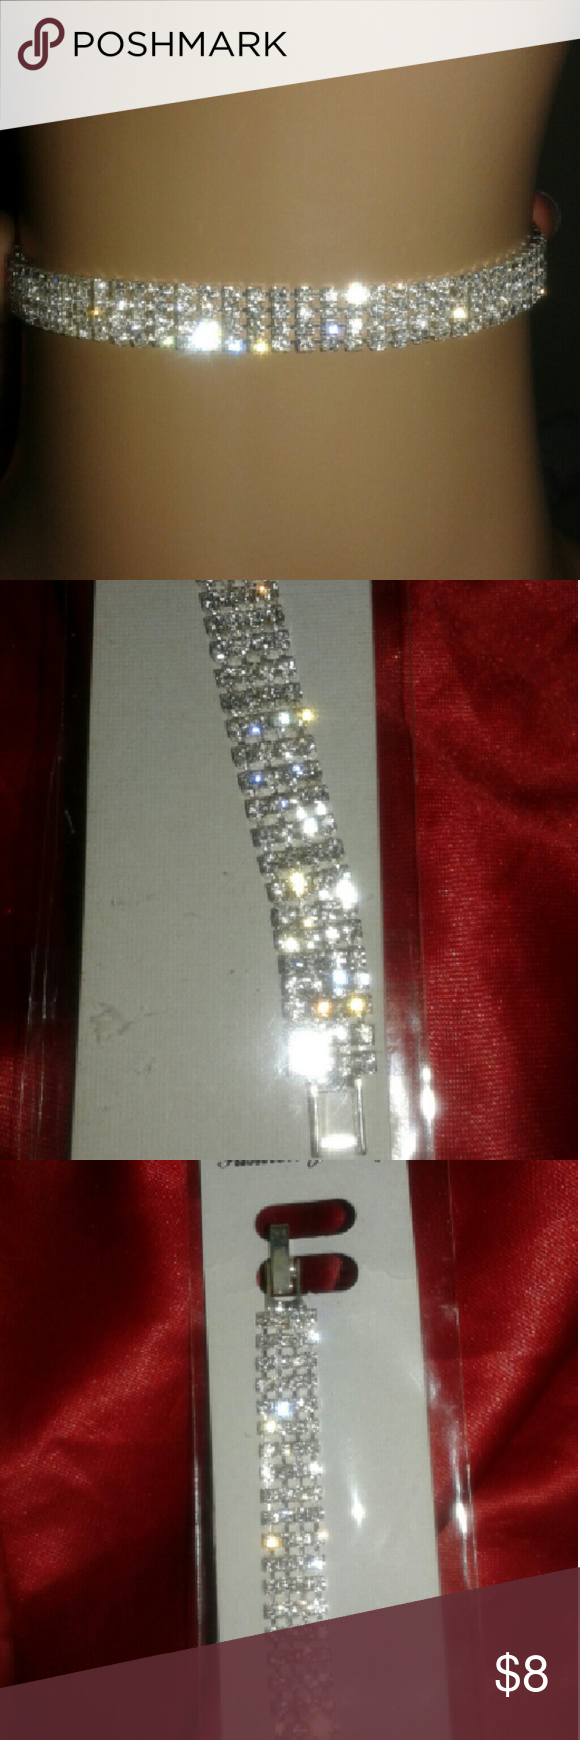 "New Rhinestone Bracelet New & never worn rhinestone bracelet. Lift & lock clasp. 4 rows. It can fit my 8"" wrist. Bundle it with the rhinestone hoops from closet. Wear it to a wedding, prom, anniversary dinner, or with solid color outfit for a simple elegant look. Jewelry Bracelets"